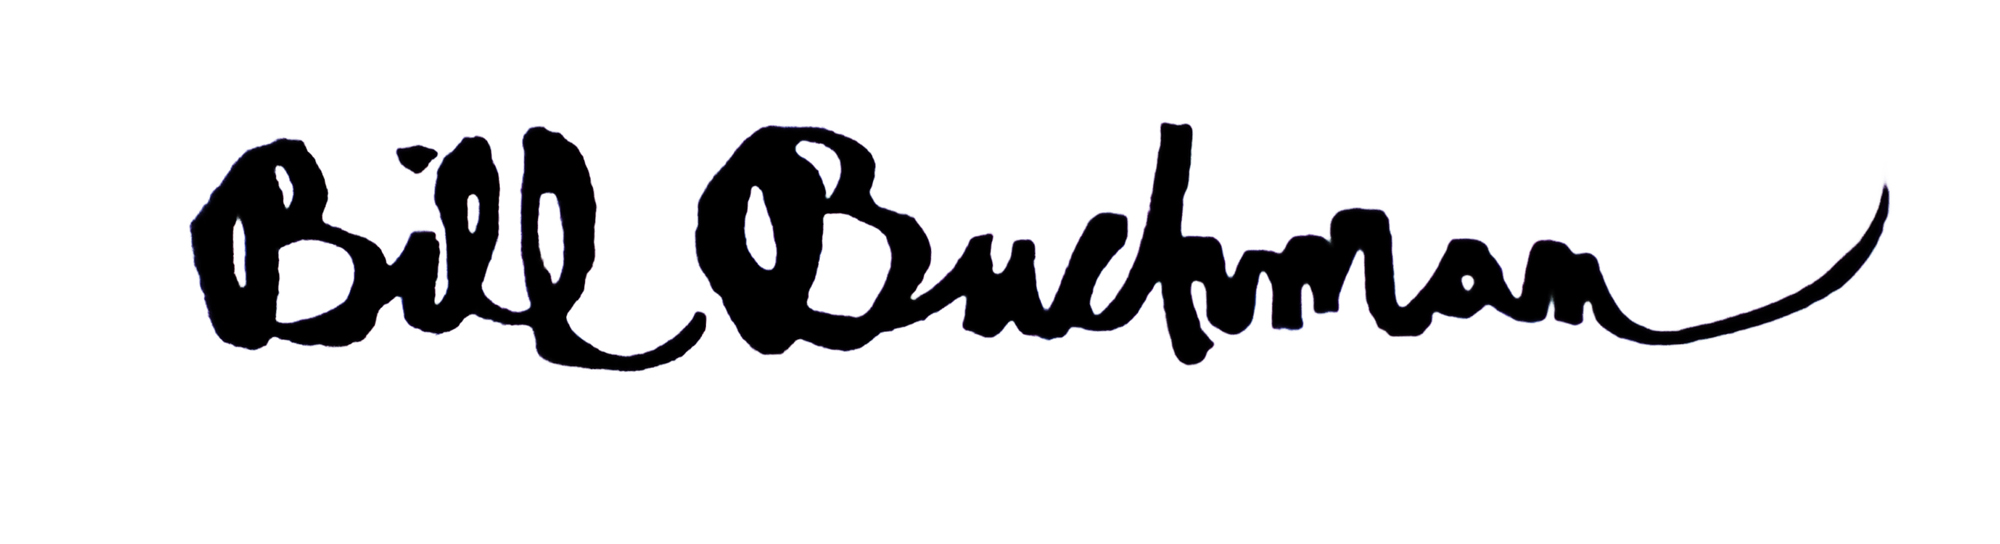 Bill Buchman Signature